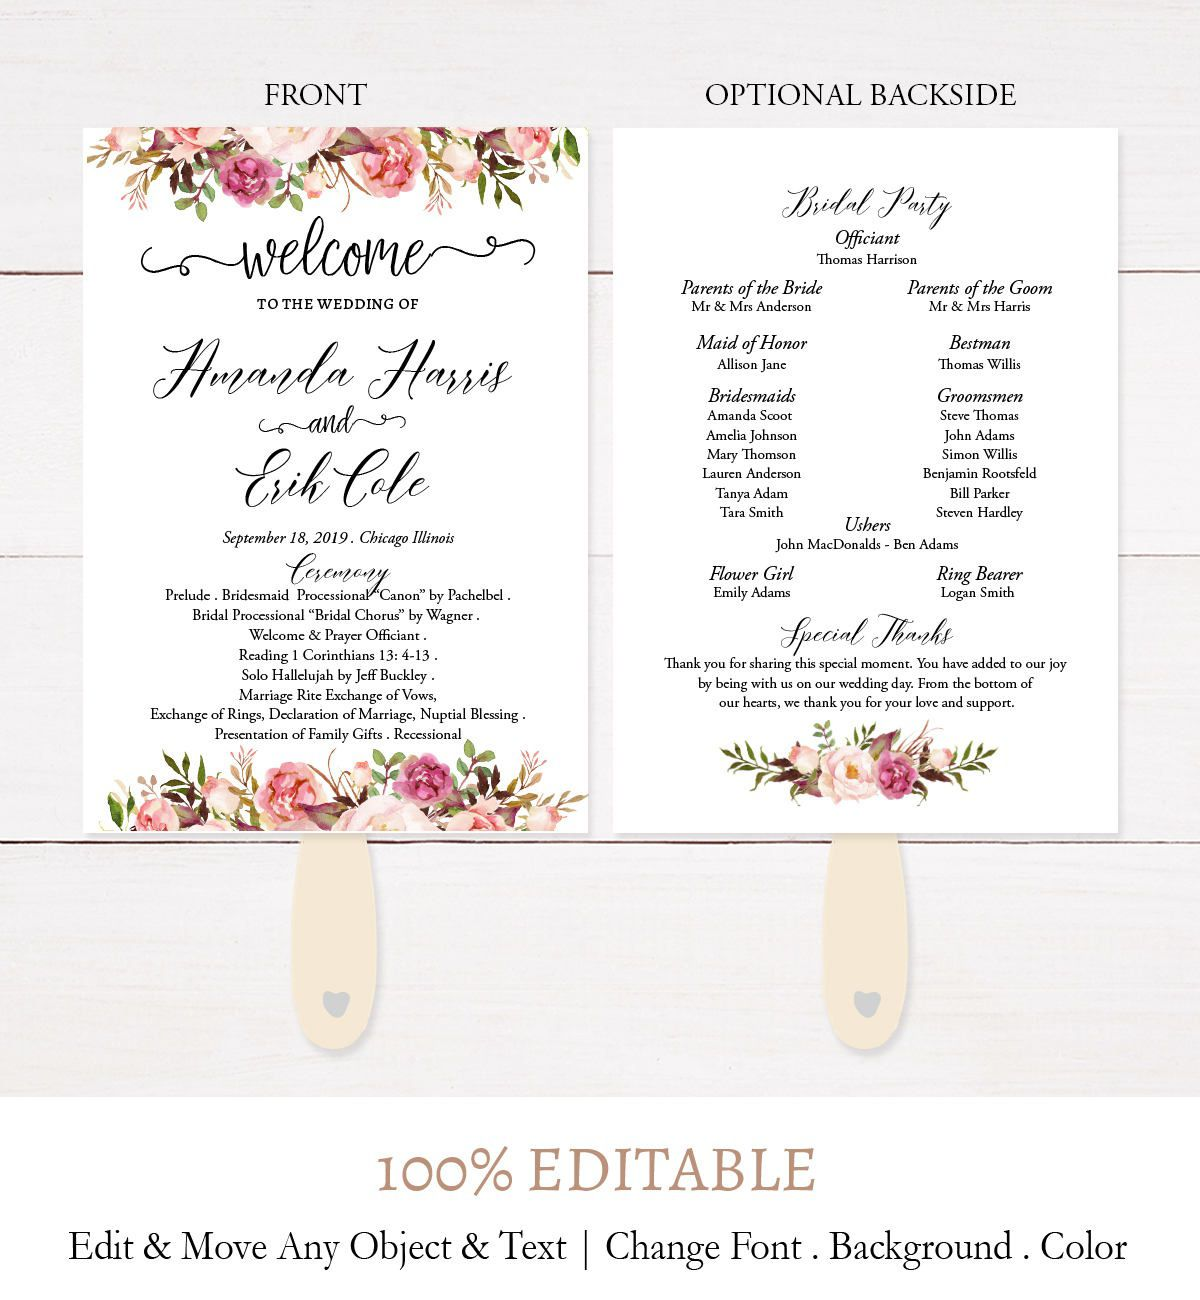 002 Awesome Wedding Program Fan Template Concept  Free Word Paddle Downloadable That Can Be PrintedFull